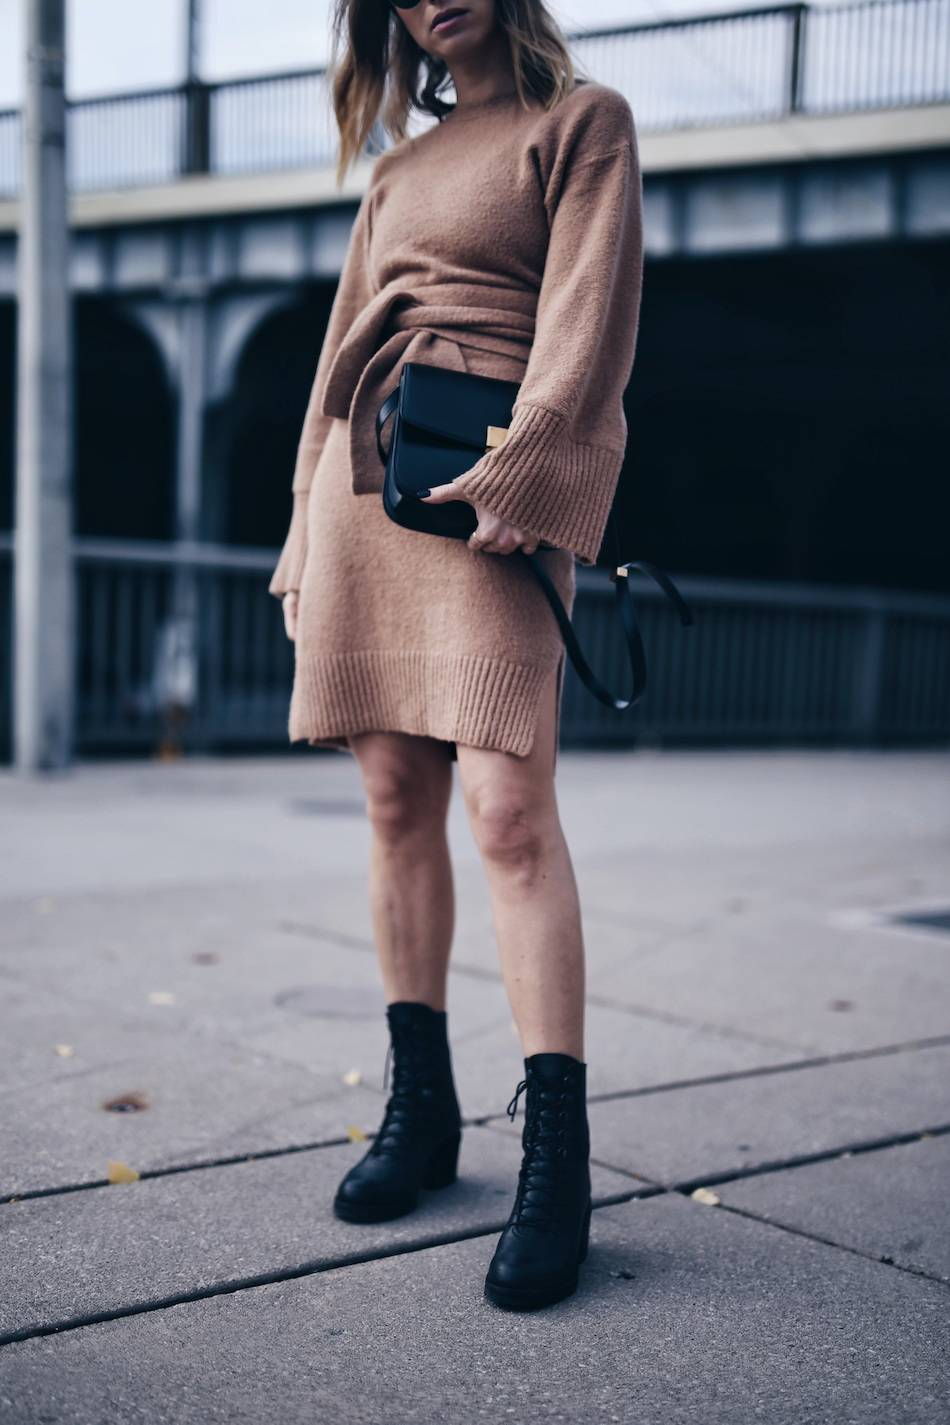 style-blogger-jill-lansky-of-the-august-diaries-wearing-3-1-phillip-lim-knit-dress-celine-black-box-bag-and-ld-tuttle-combat-boots